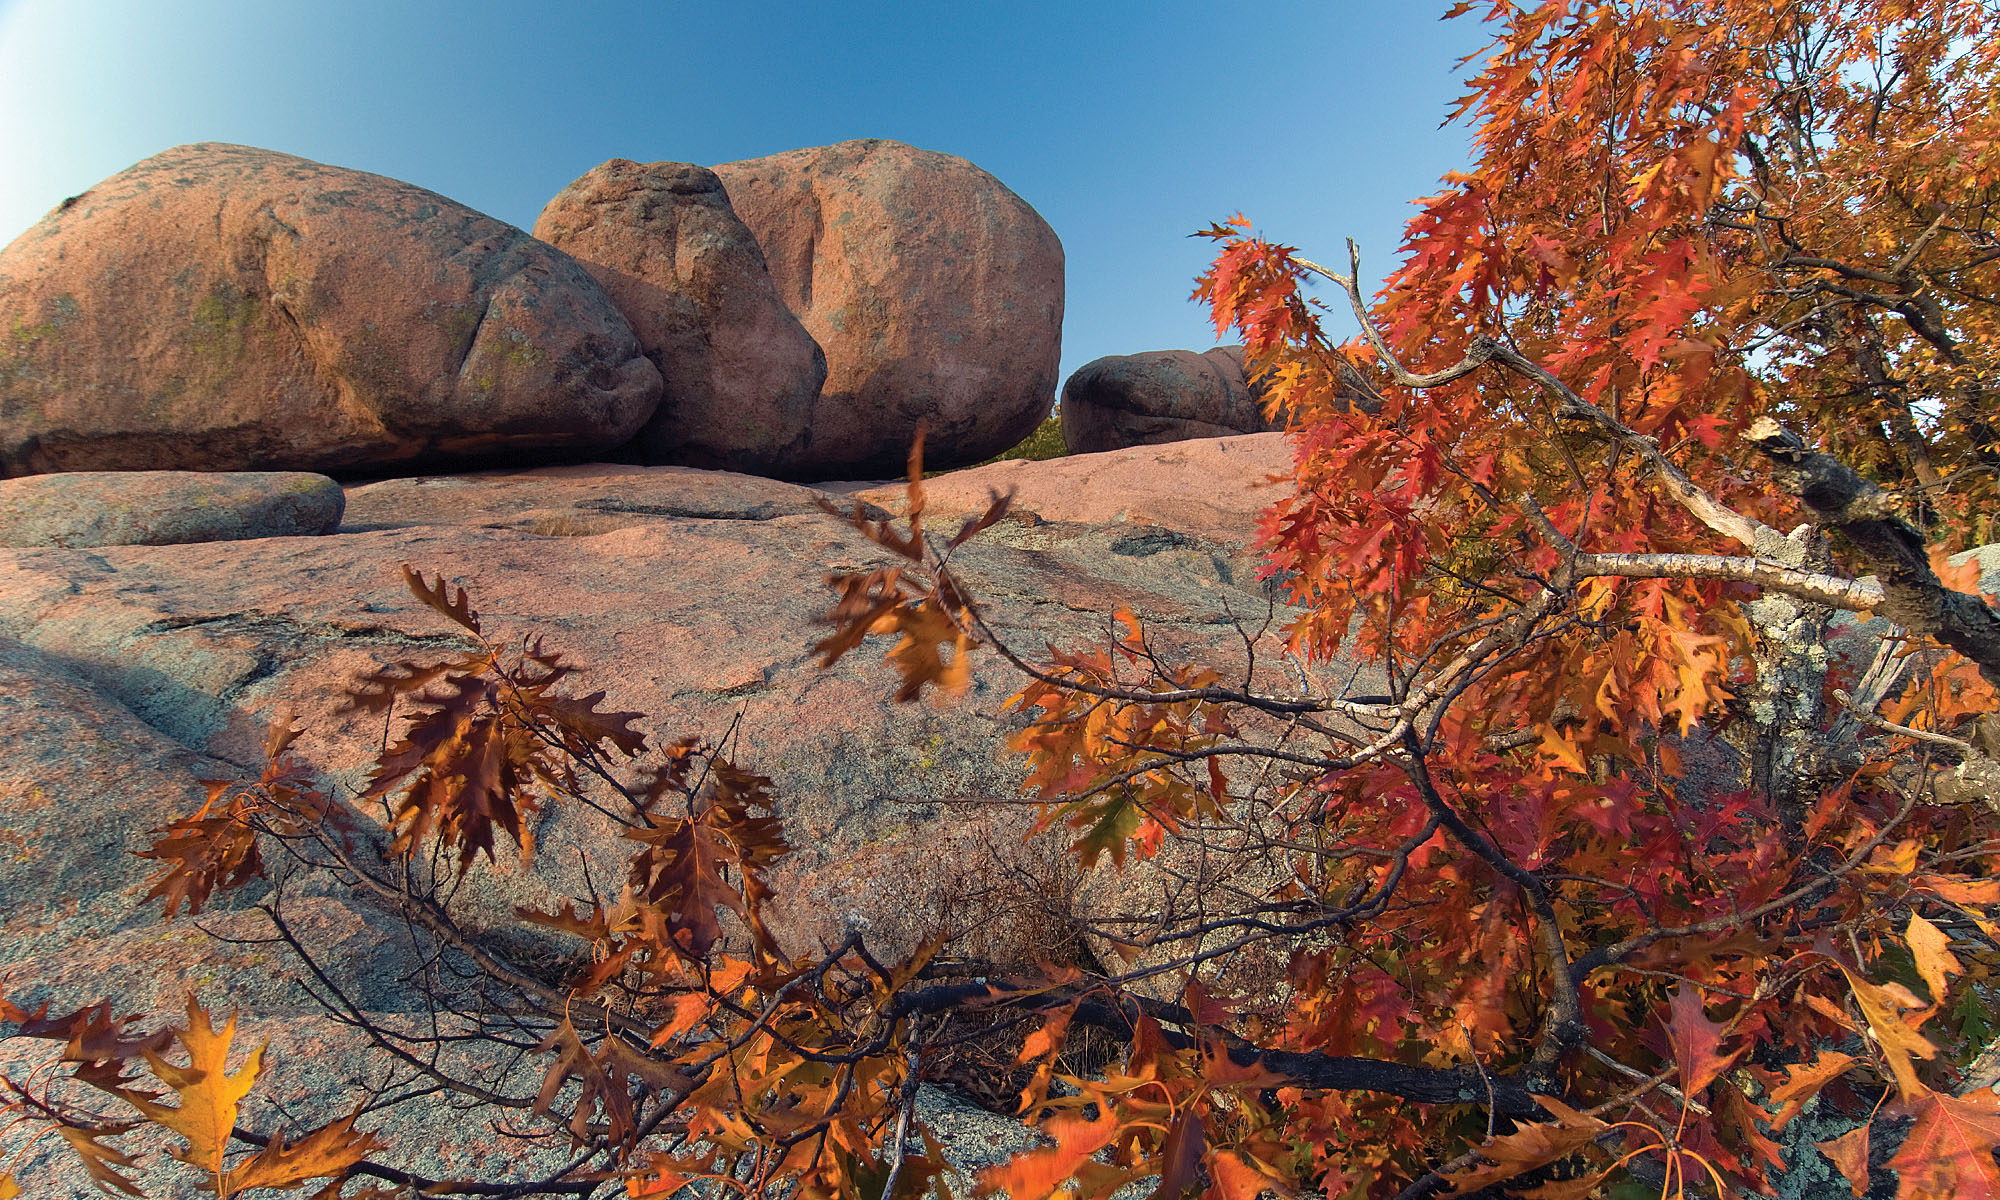 giant boulders on top of a rock bed with fall color trees in the foreground